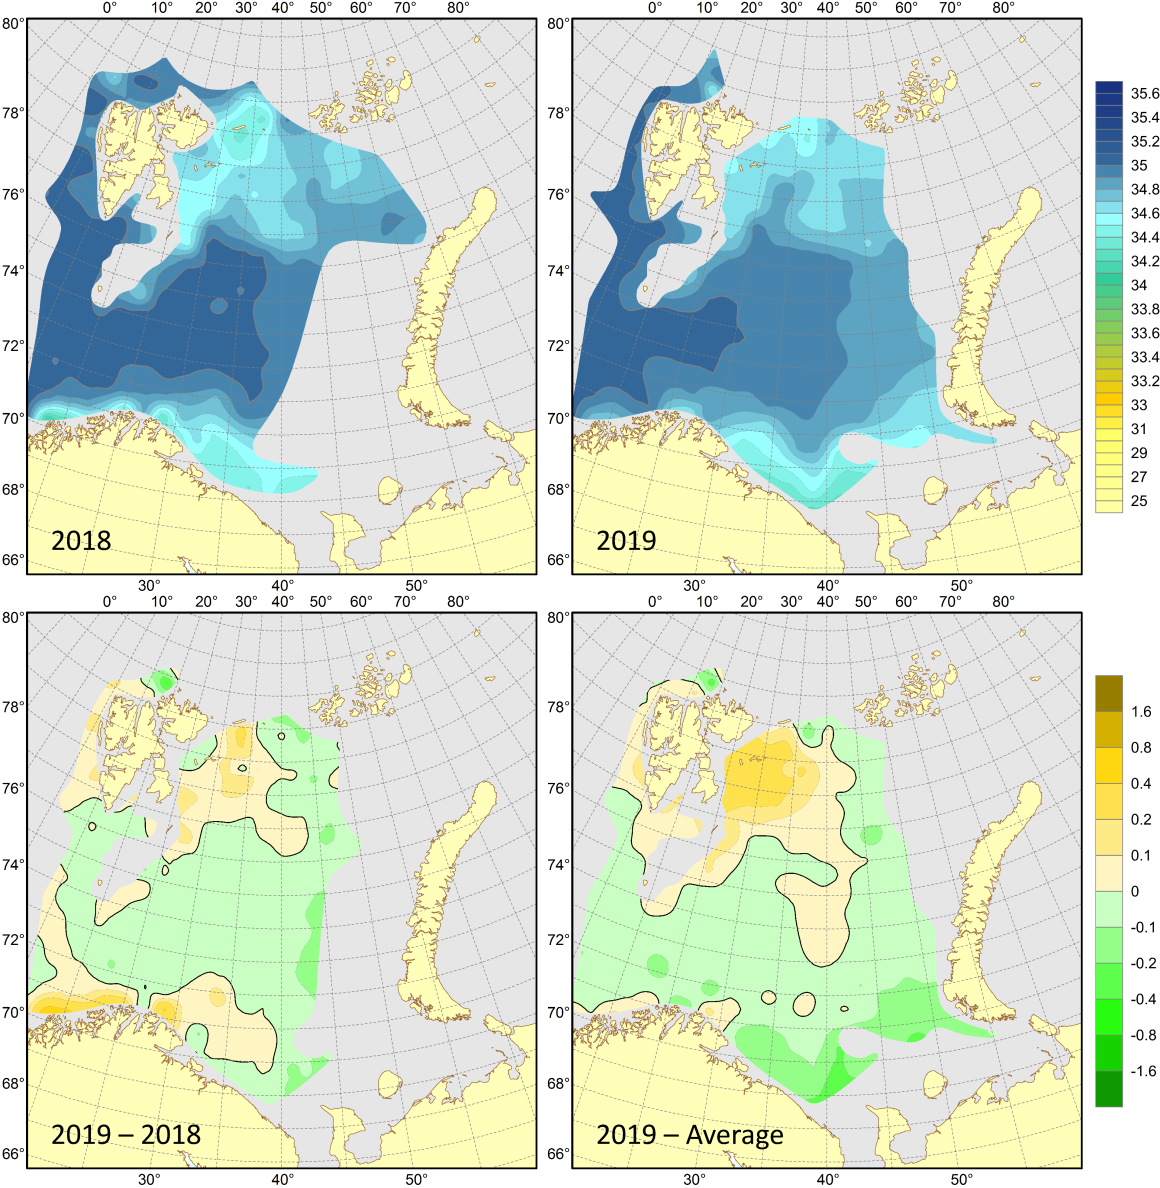 Figure 3.1.12. 100 m salinities in August–September 2018 (upper left) and 2019 (upper right), their differences between 2019 and 2018 (lower left) and anomalies in August–September 2019 (lower right).